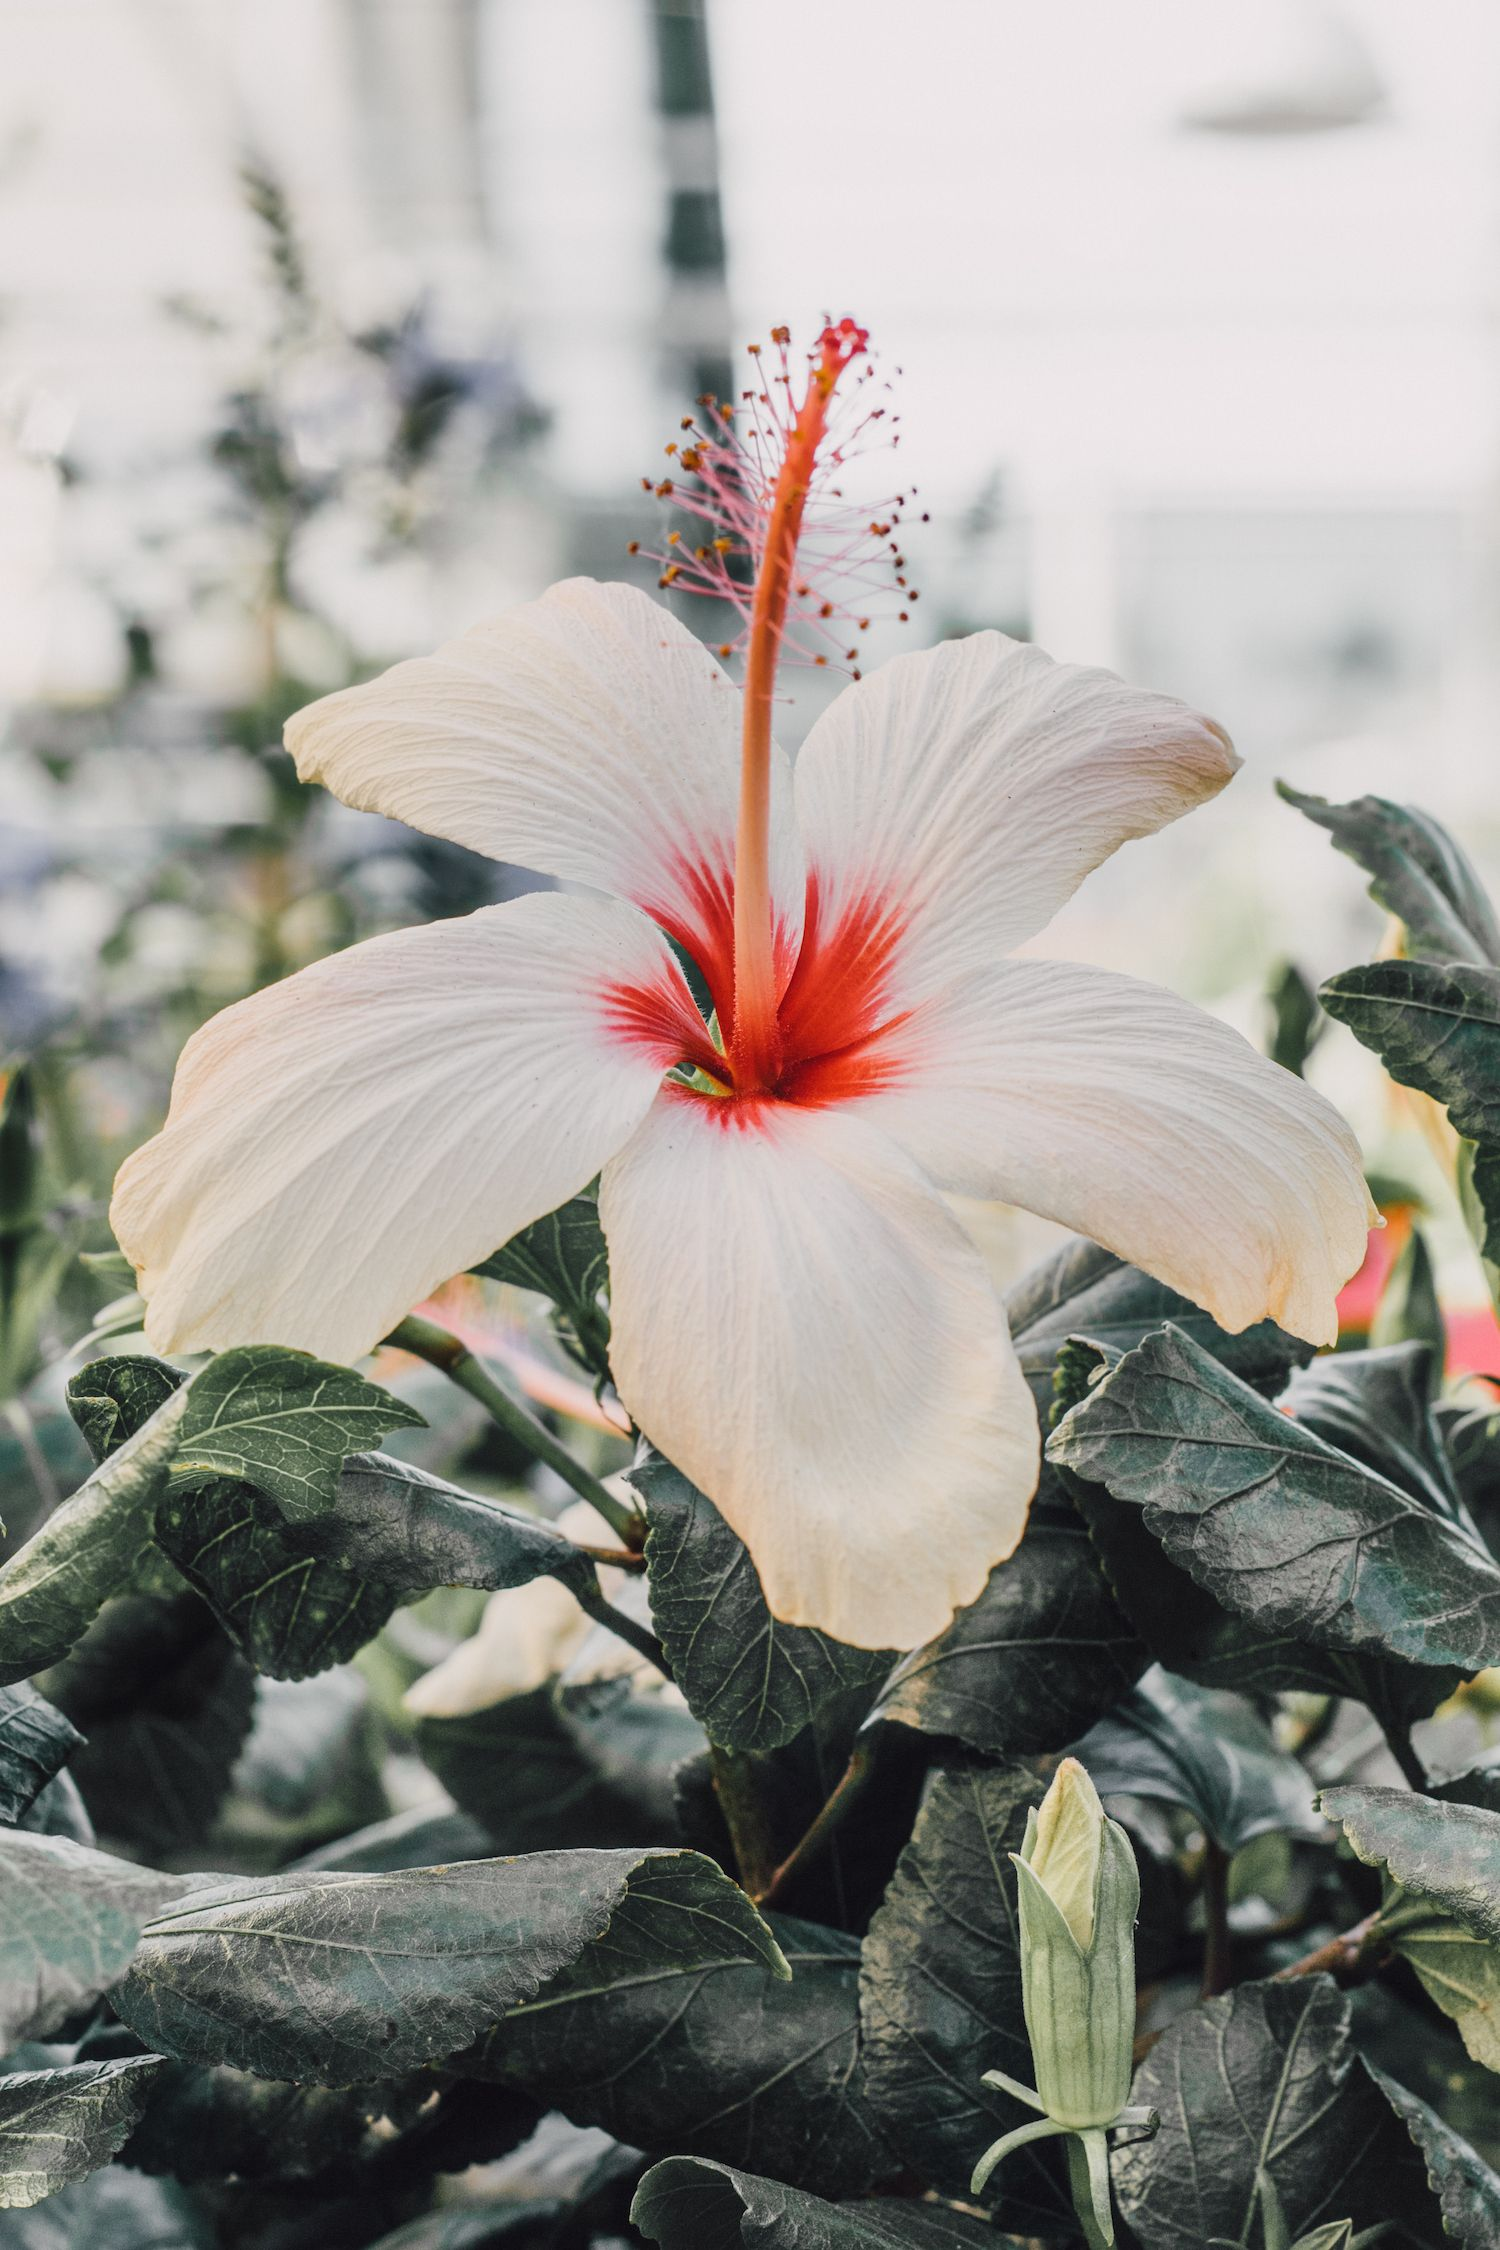 Hibiscus Flower Art Prints For Walls Flowers Photography Hibiscus Flowers Flower Prints Art